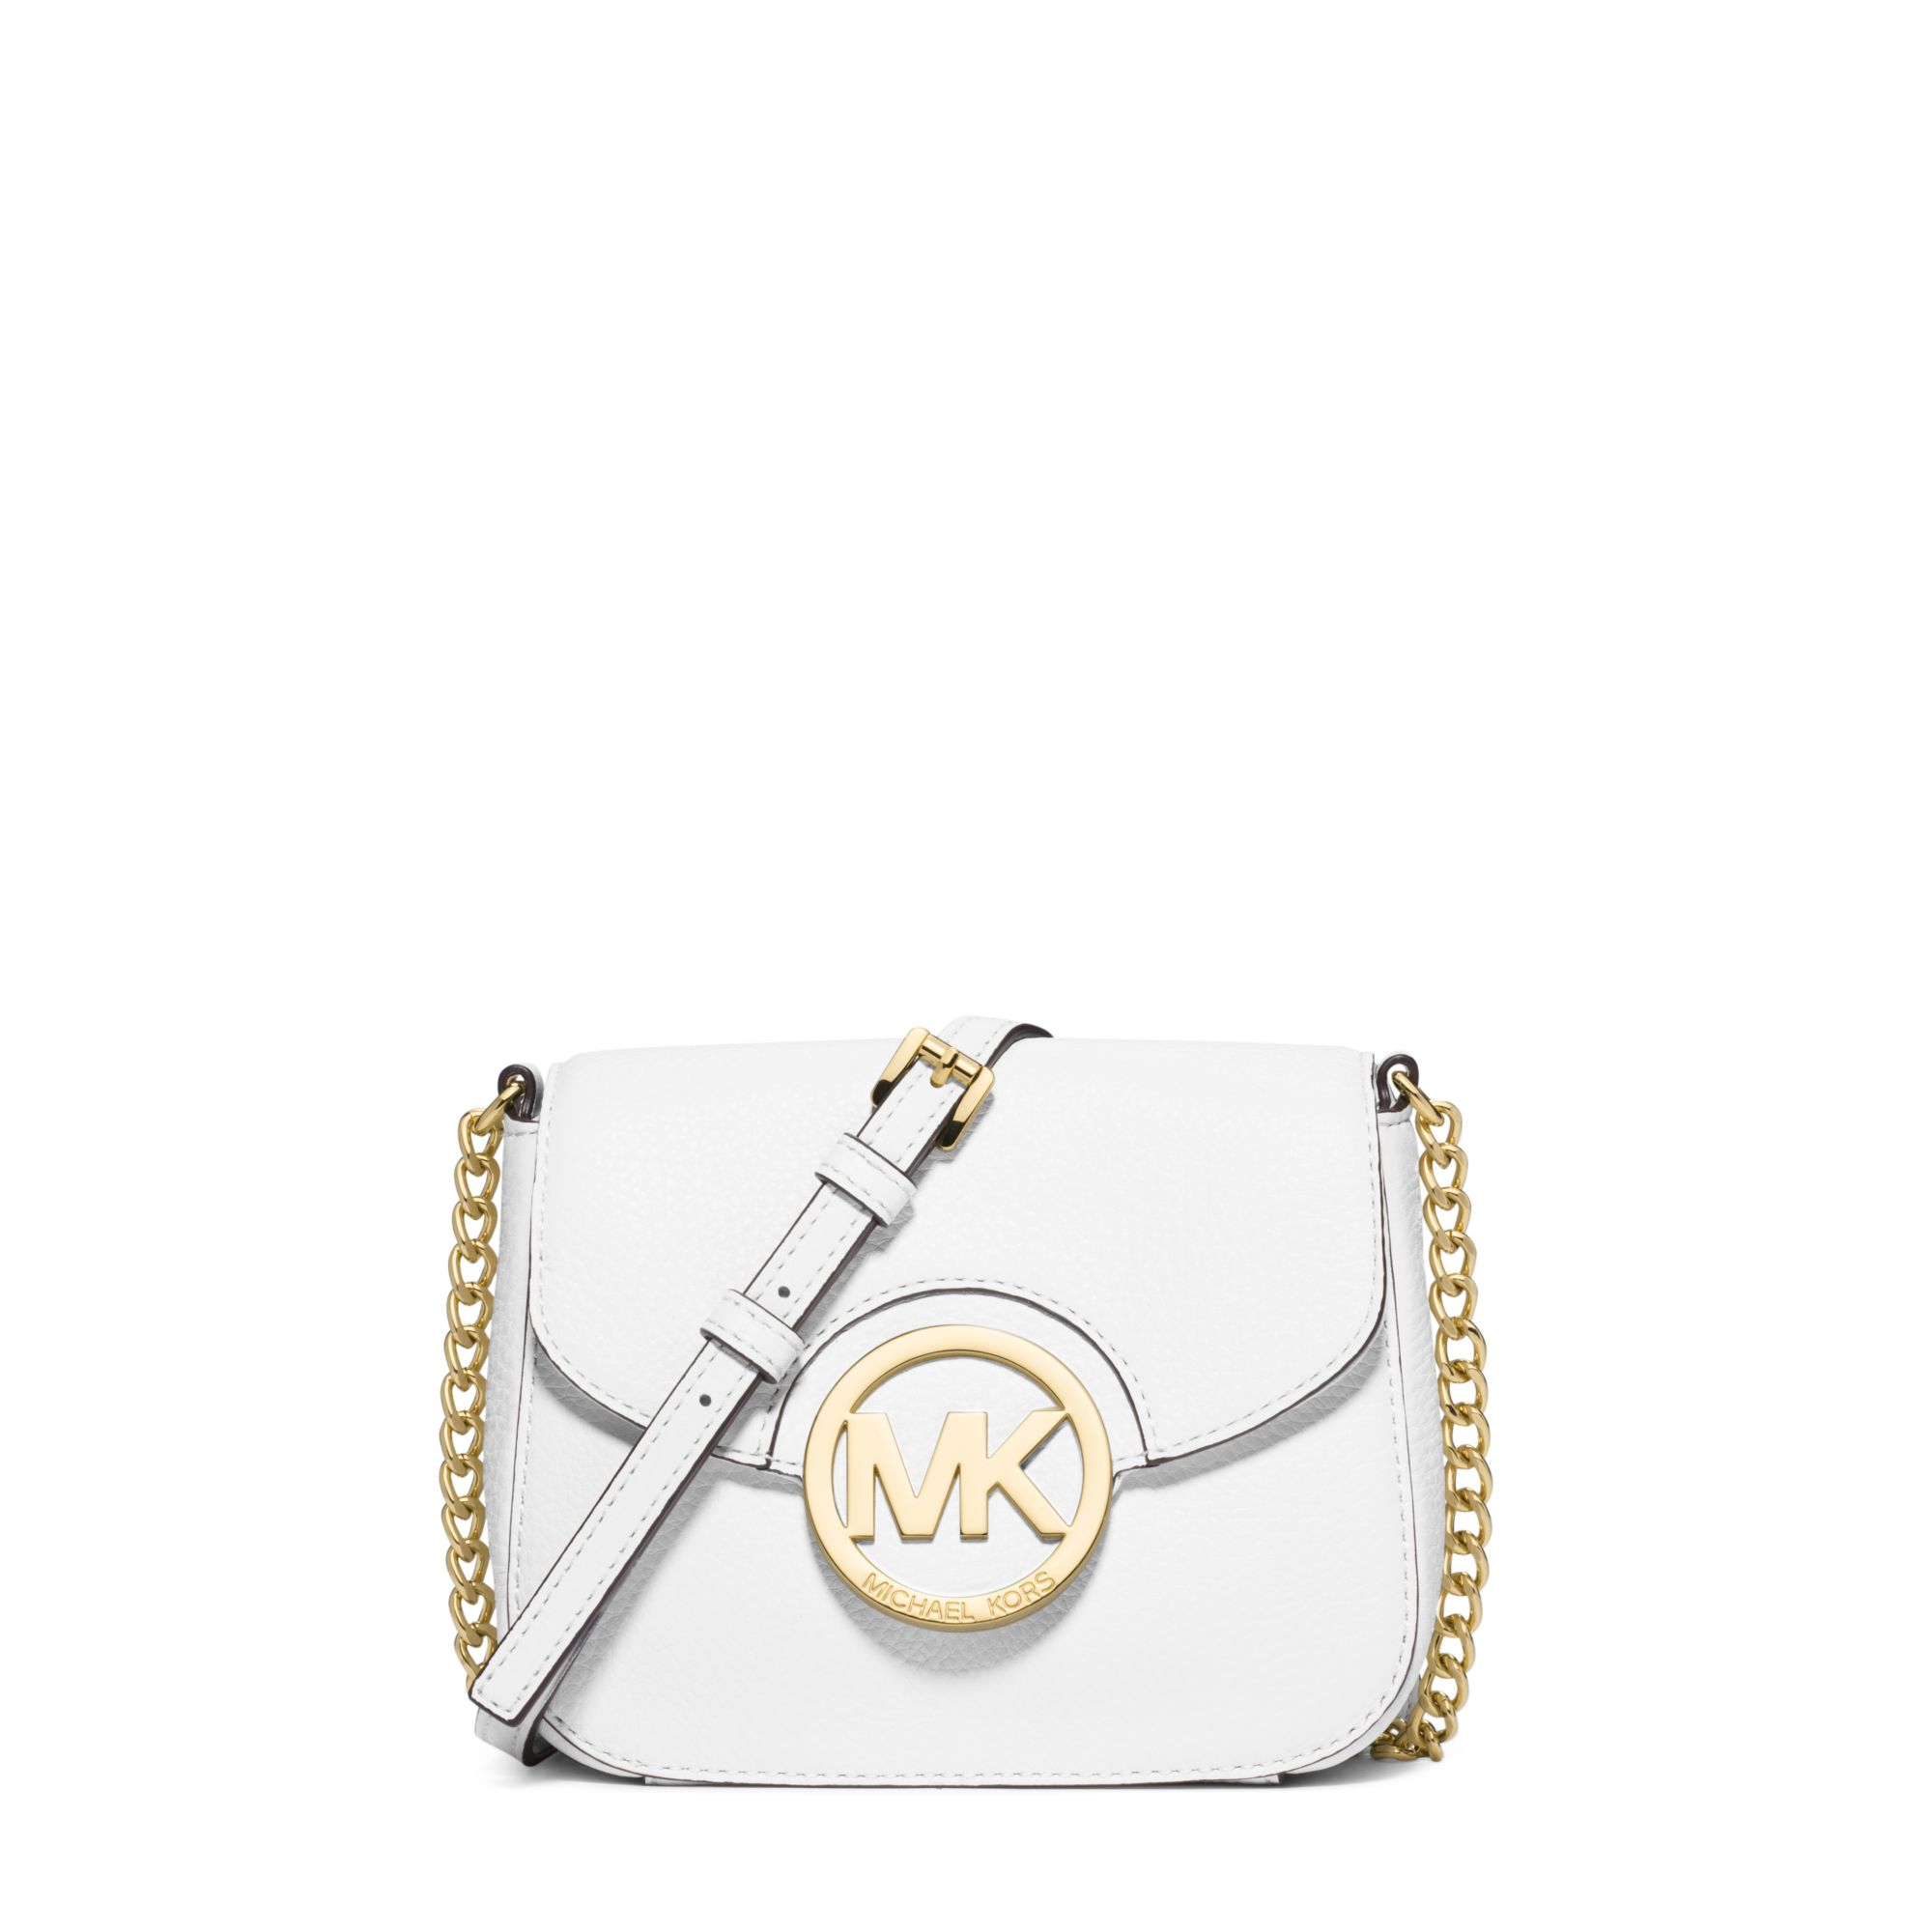 fbc71f4d838d Michael Kors Fulton Leather Small Crossbody in White - Lyst